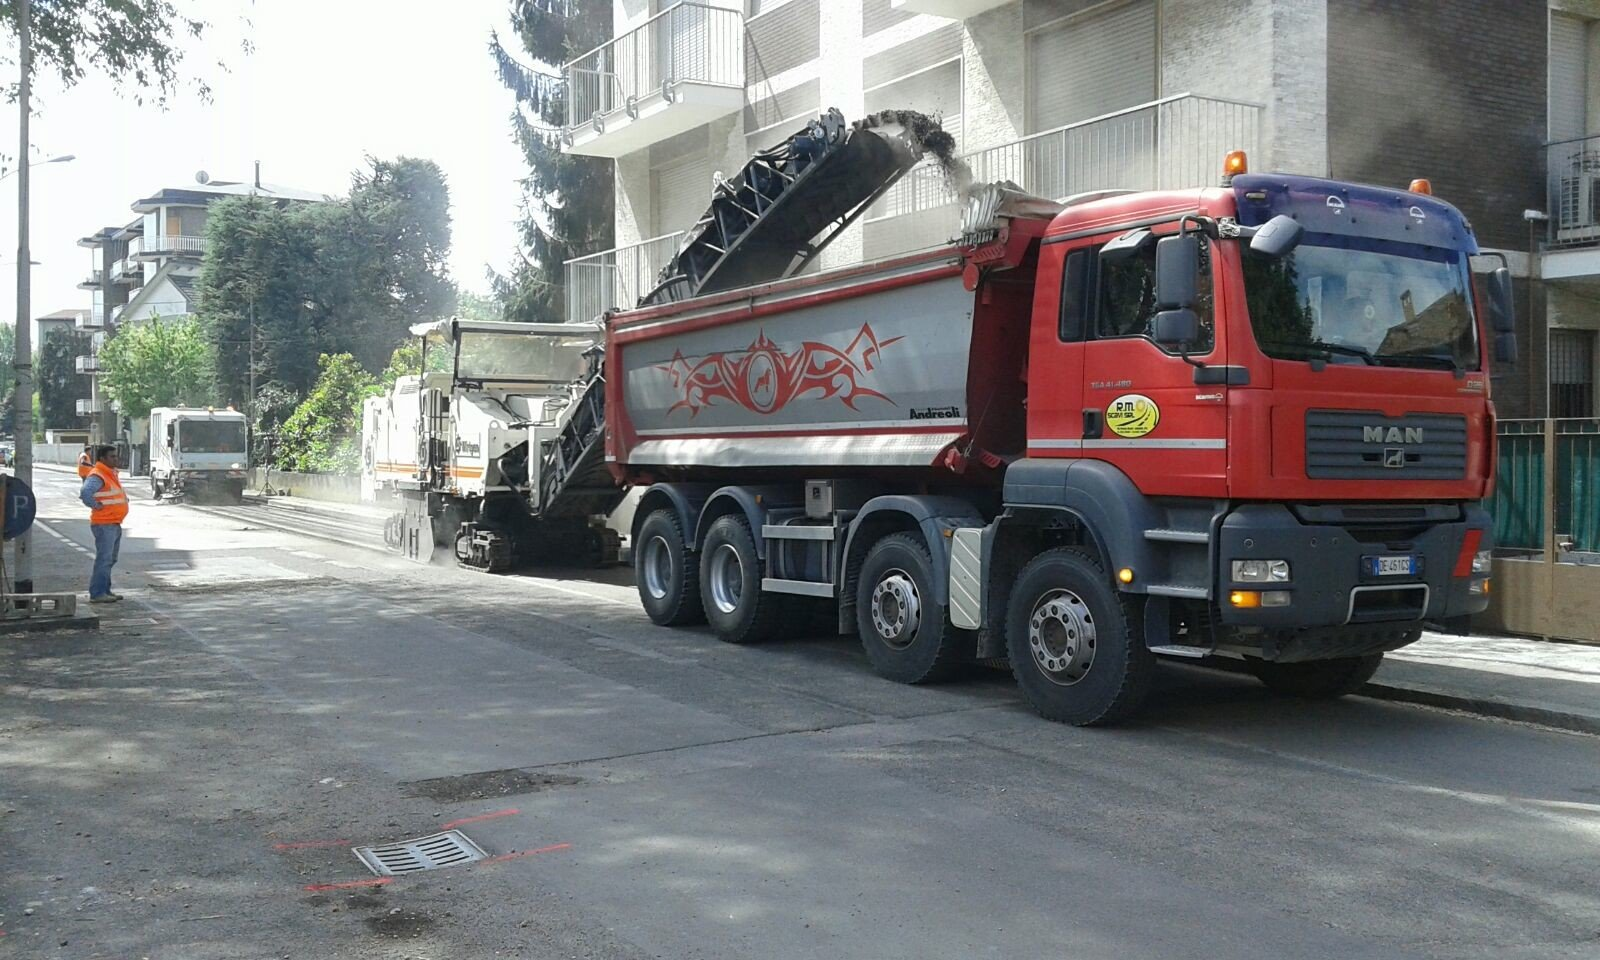 Camion rosso in un cantiere